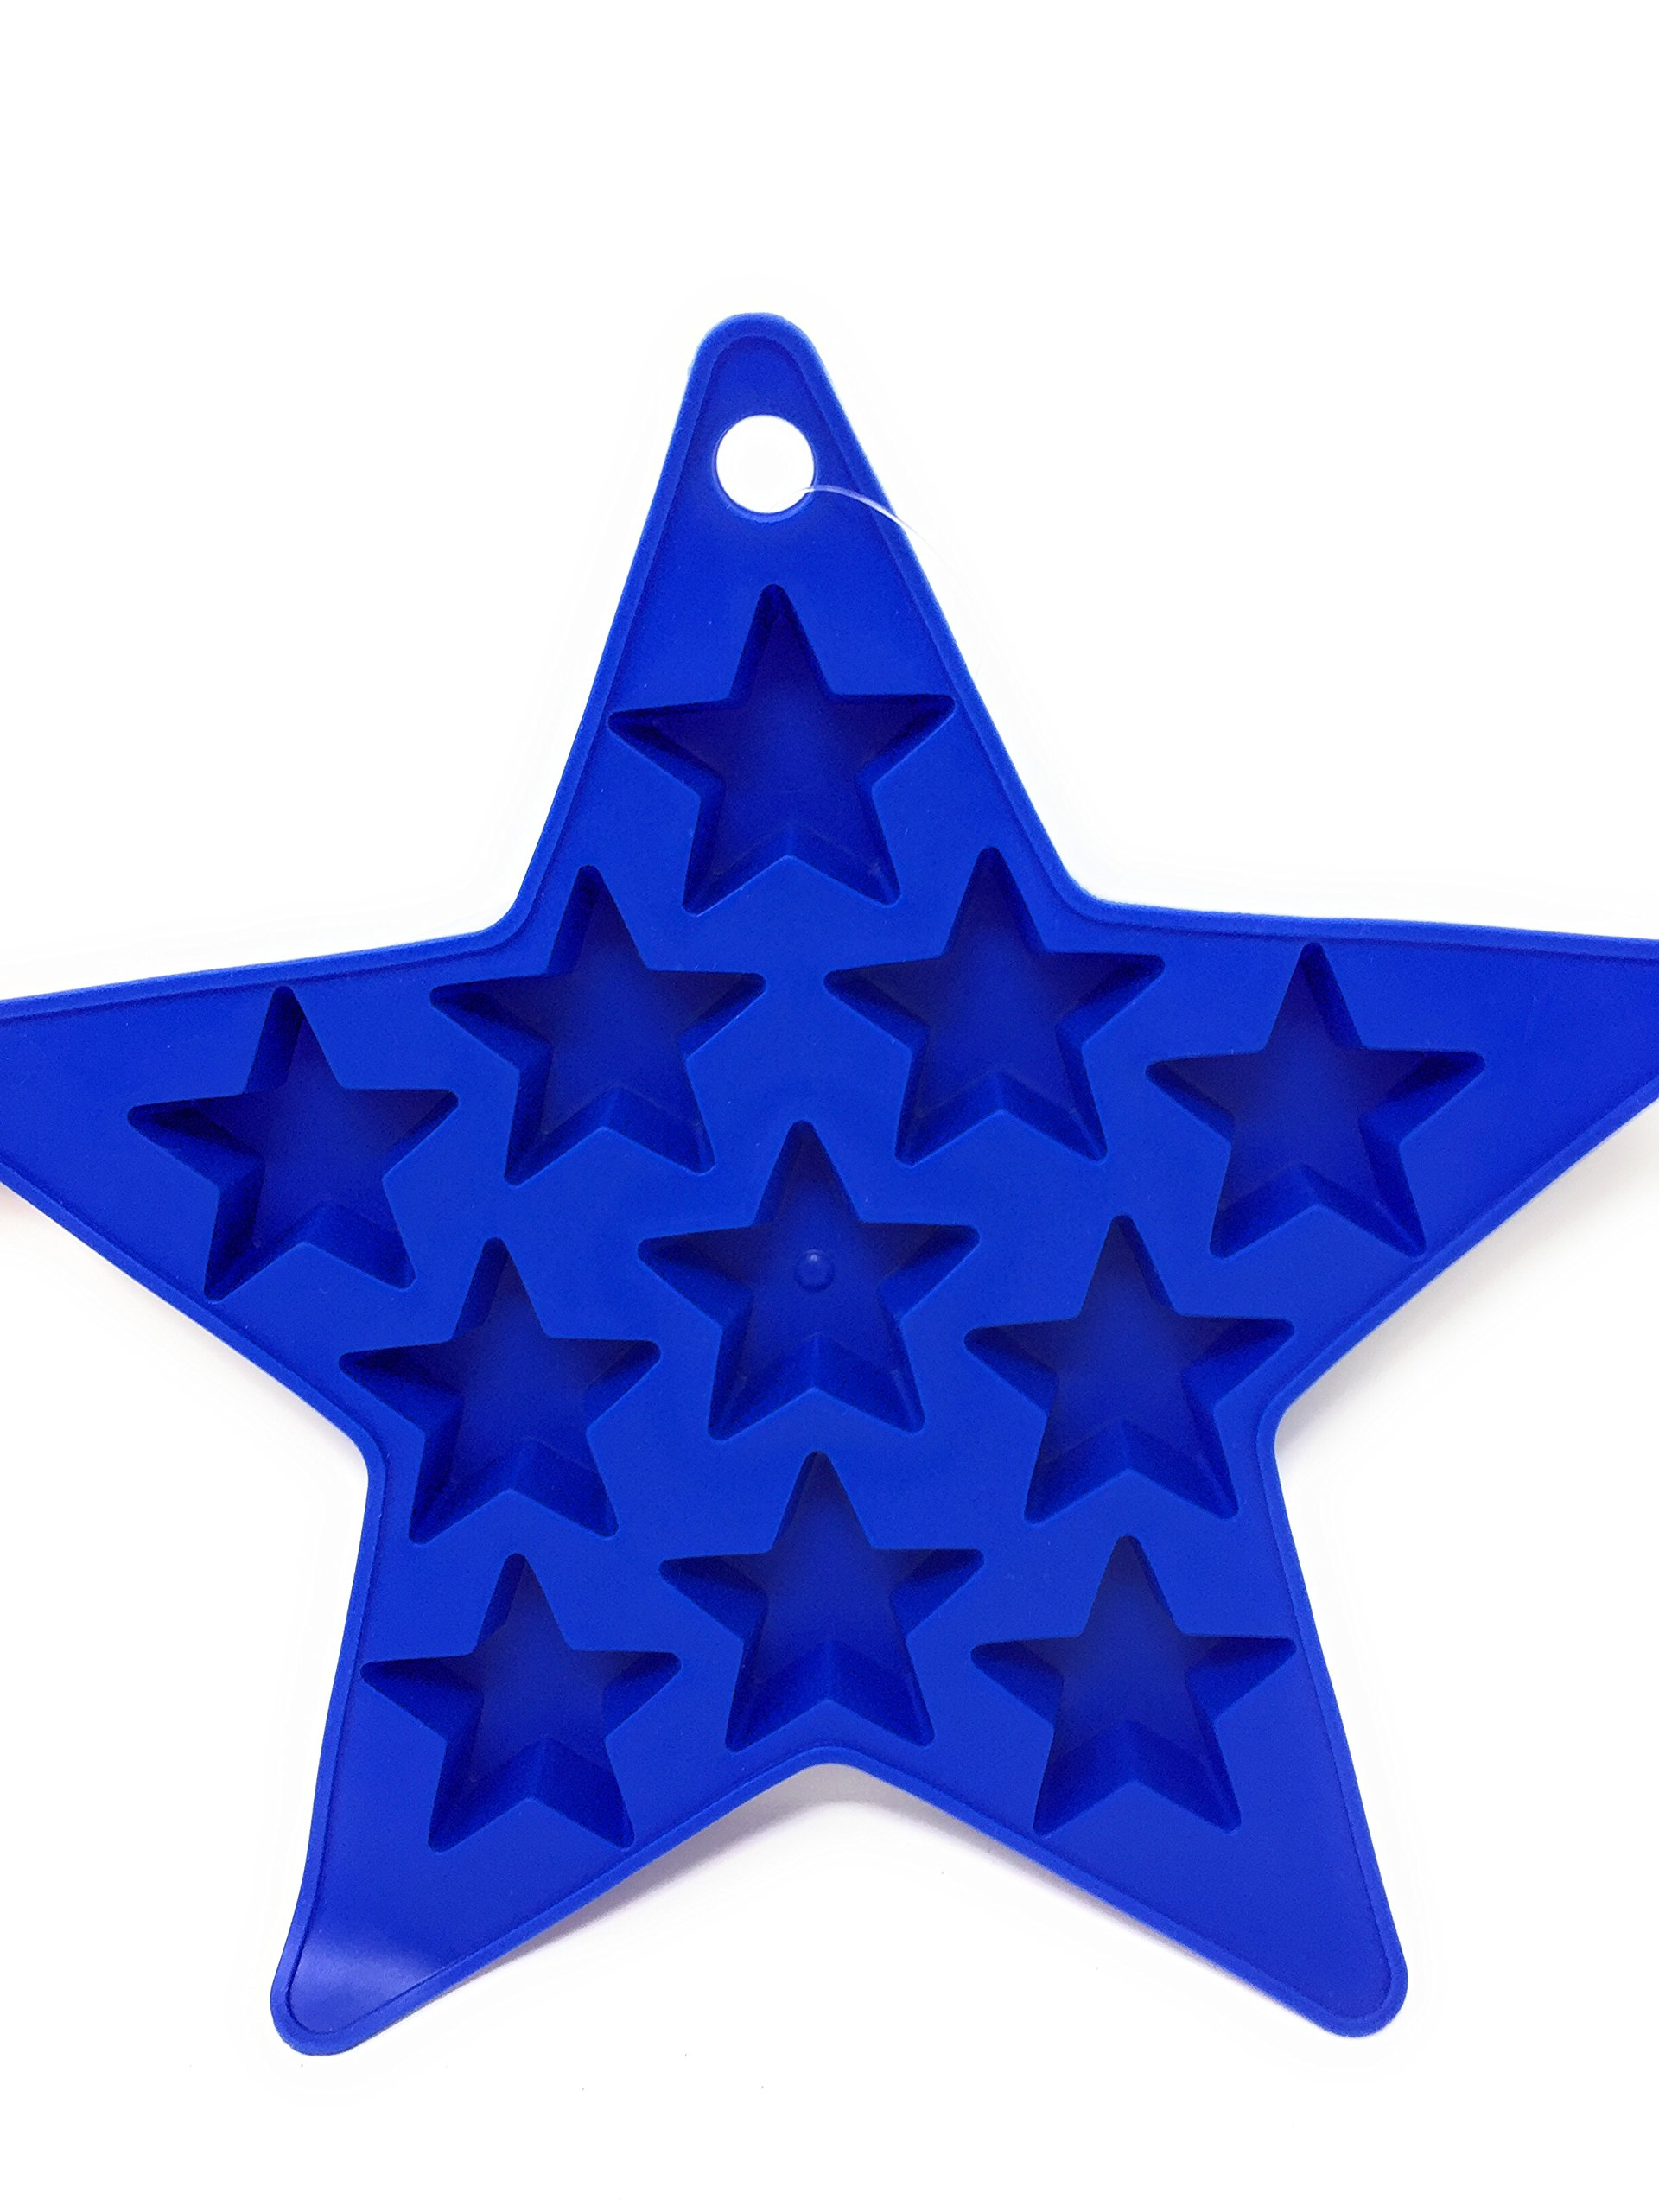 Patriotic Star Shaped Ice Cube Trays in Red and Blue (Set of 2) Makes 22 Star-Shaped Ice Cubes by Hobbeez (Image #3)